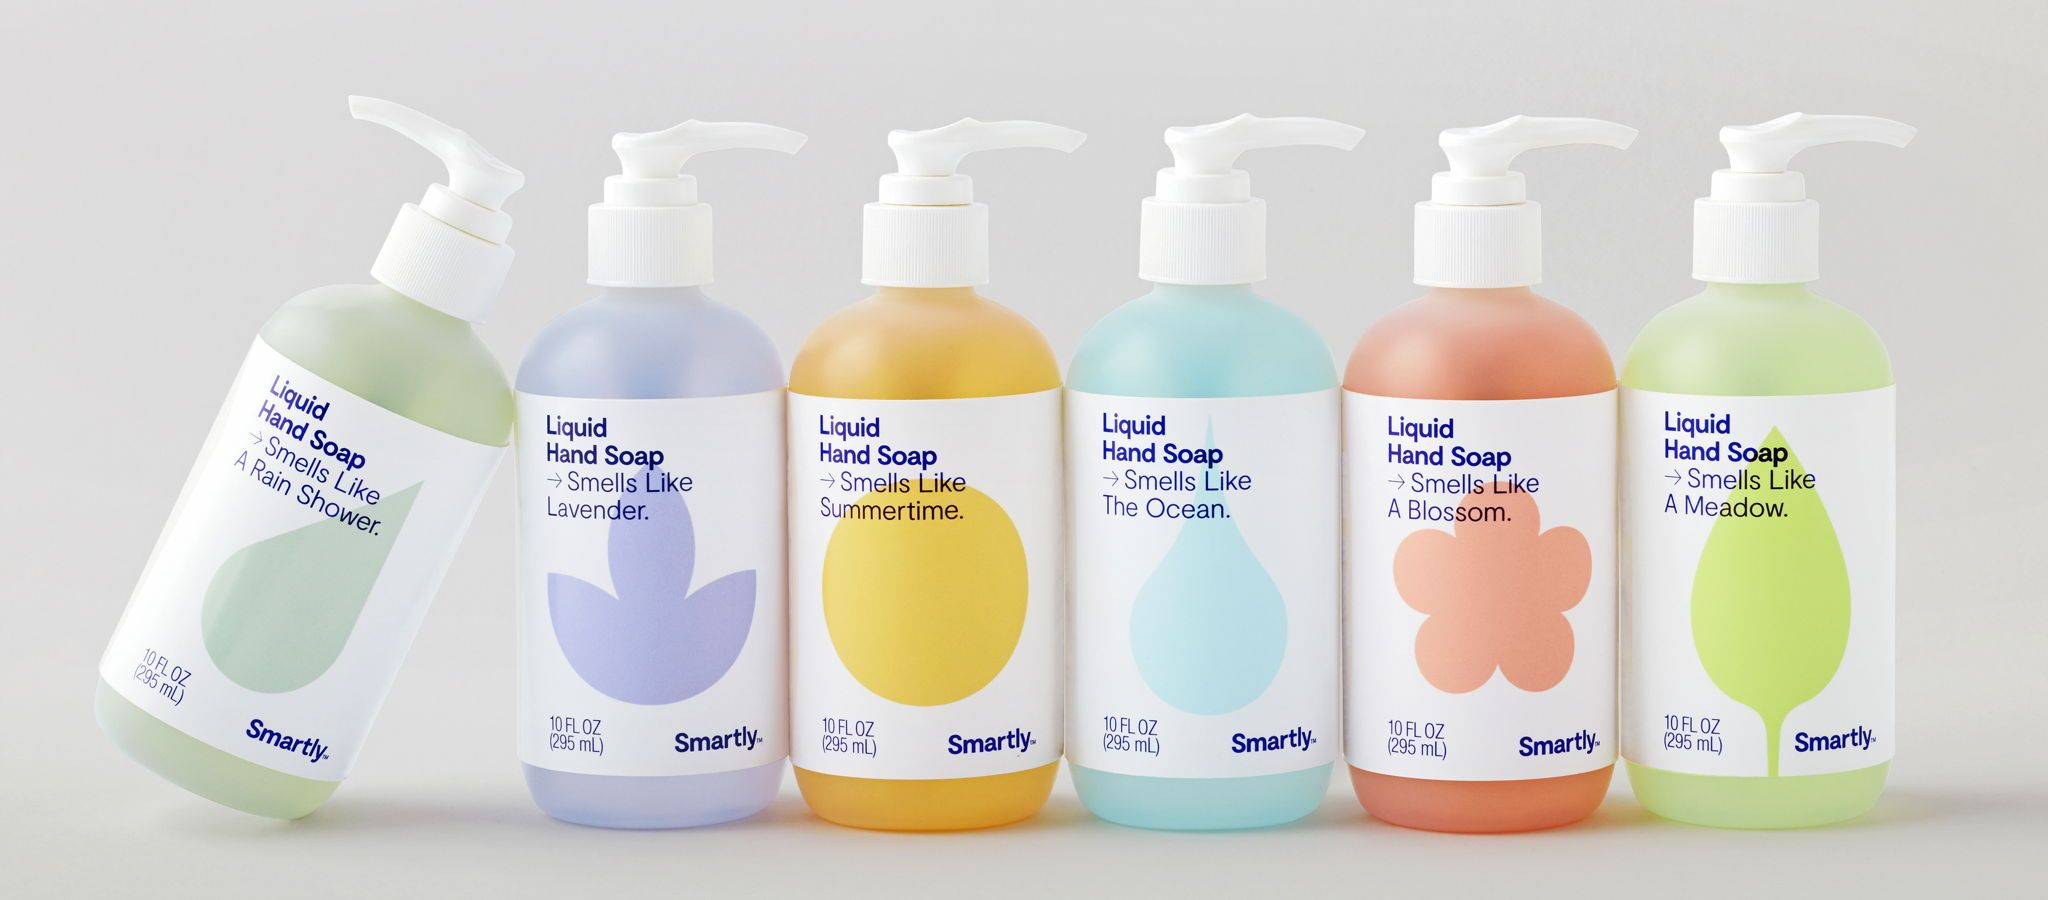 Target Launches New Discount Brand Smartly Brand Packaging